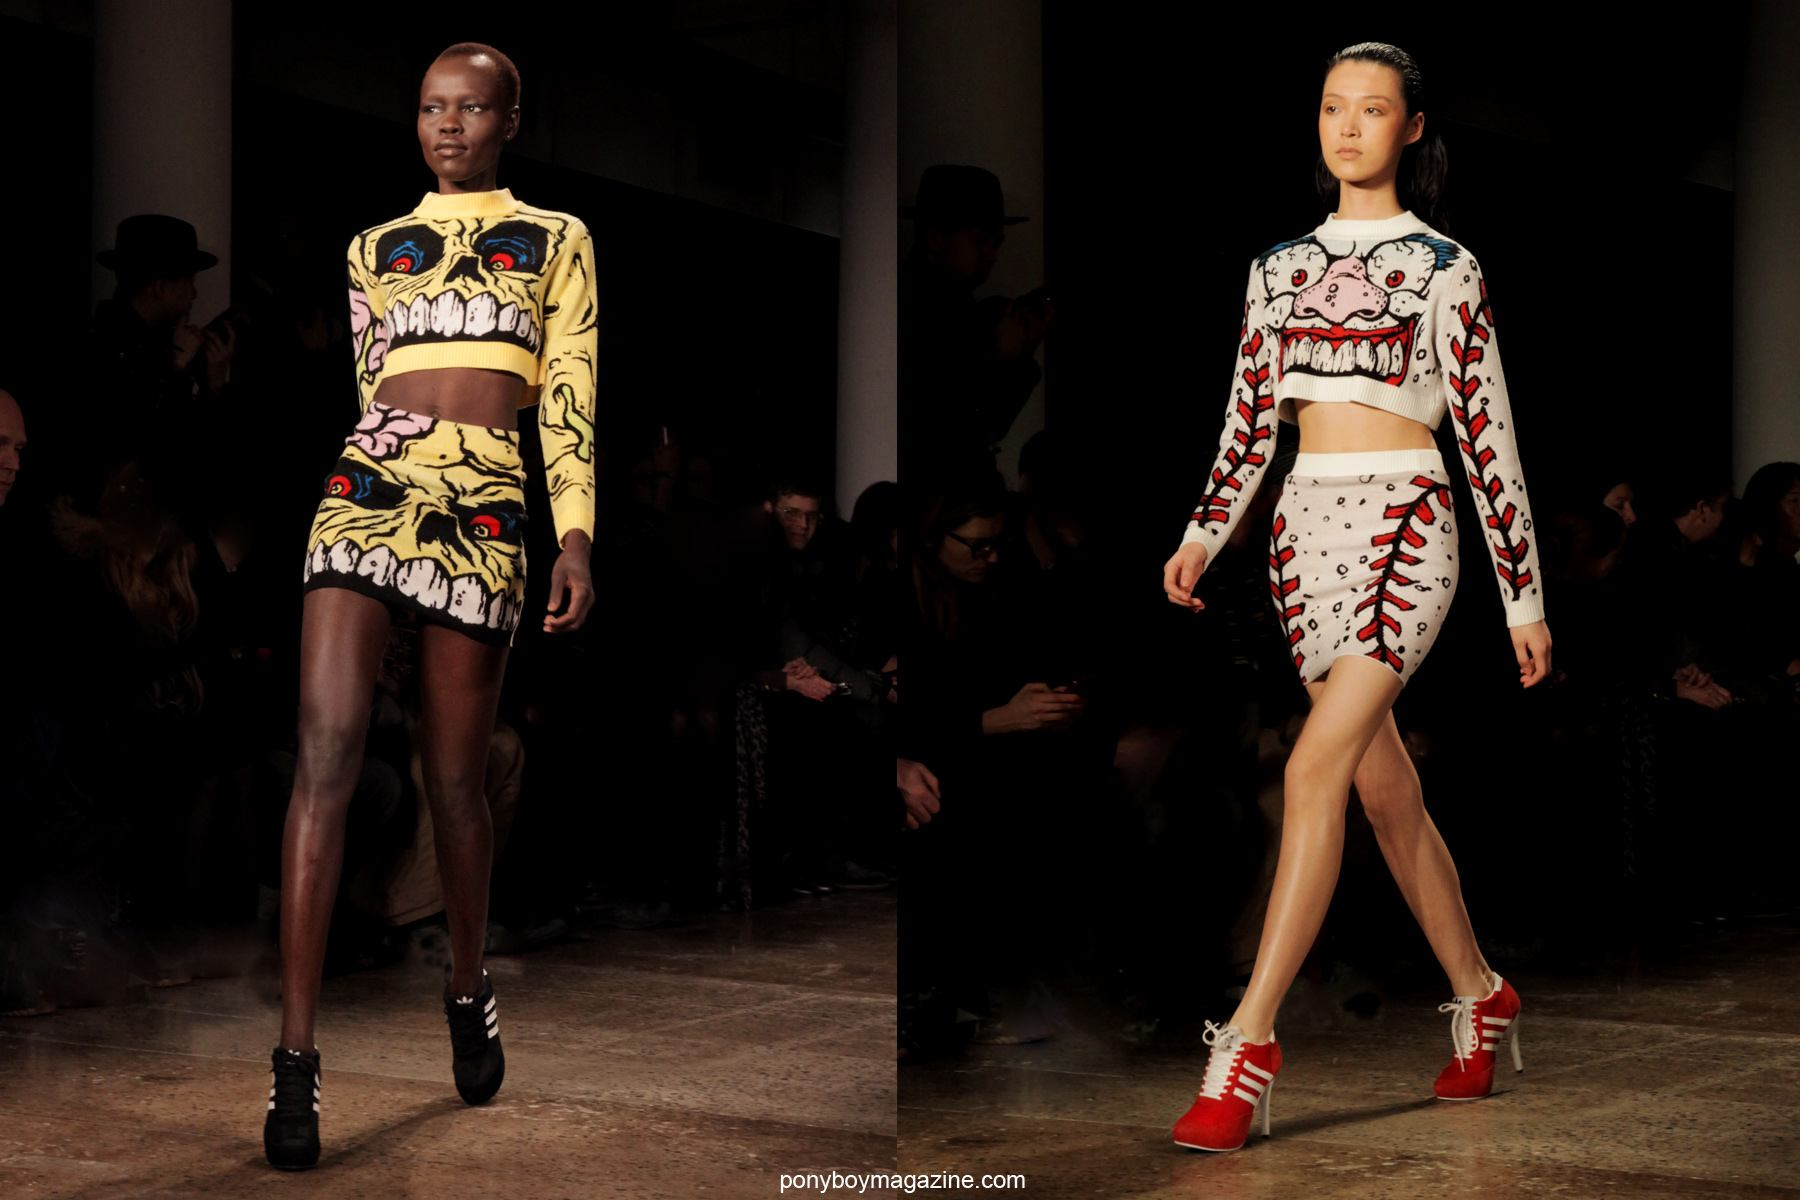 Monster print crop tops and mini skirts designed by Jeremy Scott Autumn/Winter 2014. Photographed at Milk Studios in downtown New York City by Alexander Thompson for Ponyboy Magazine.